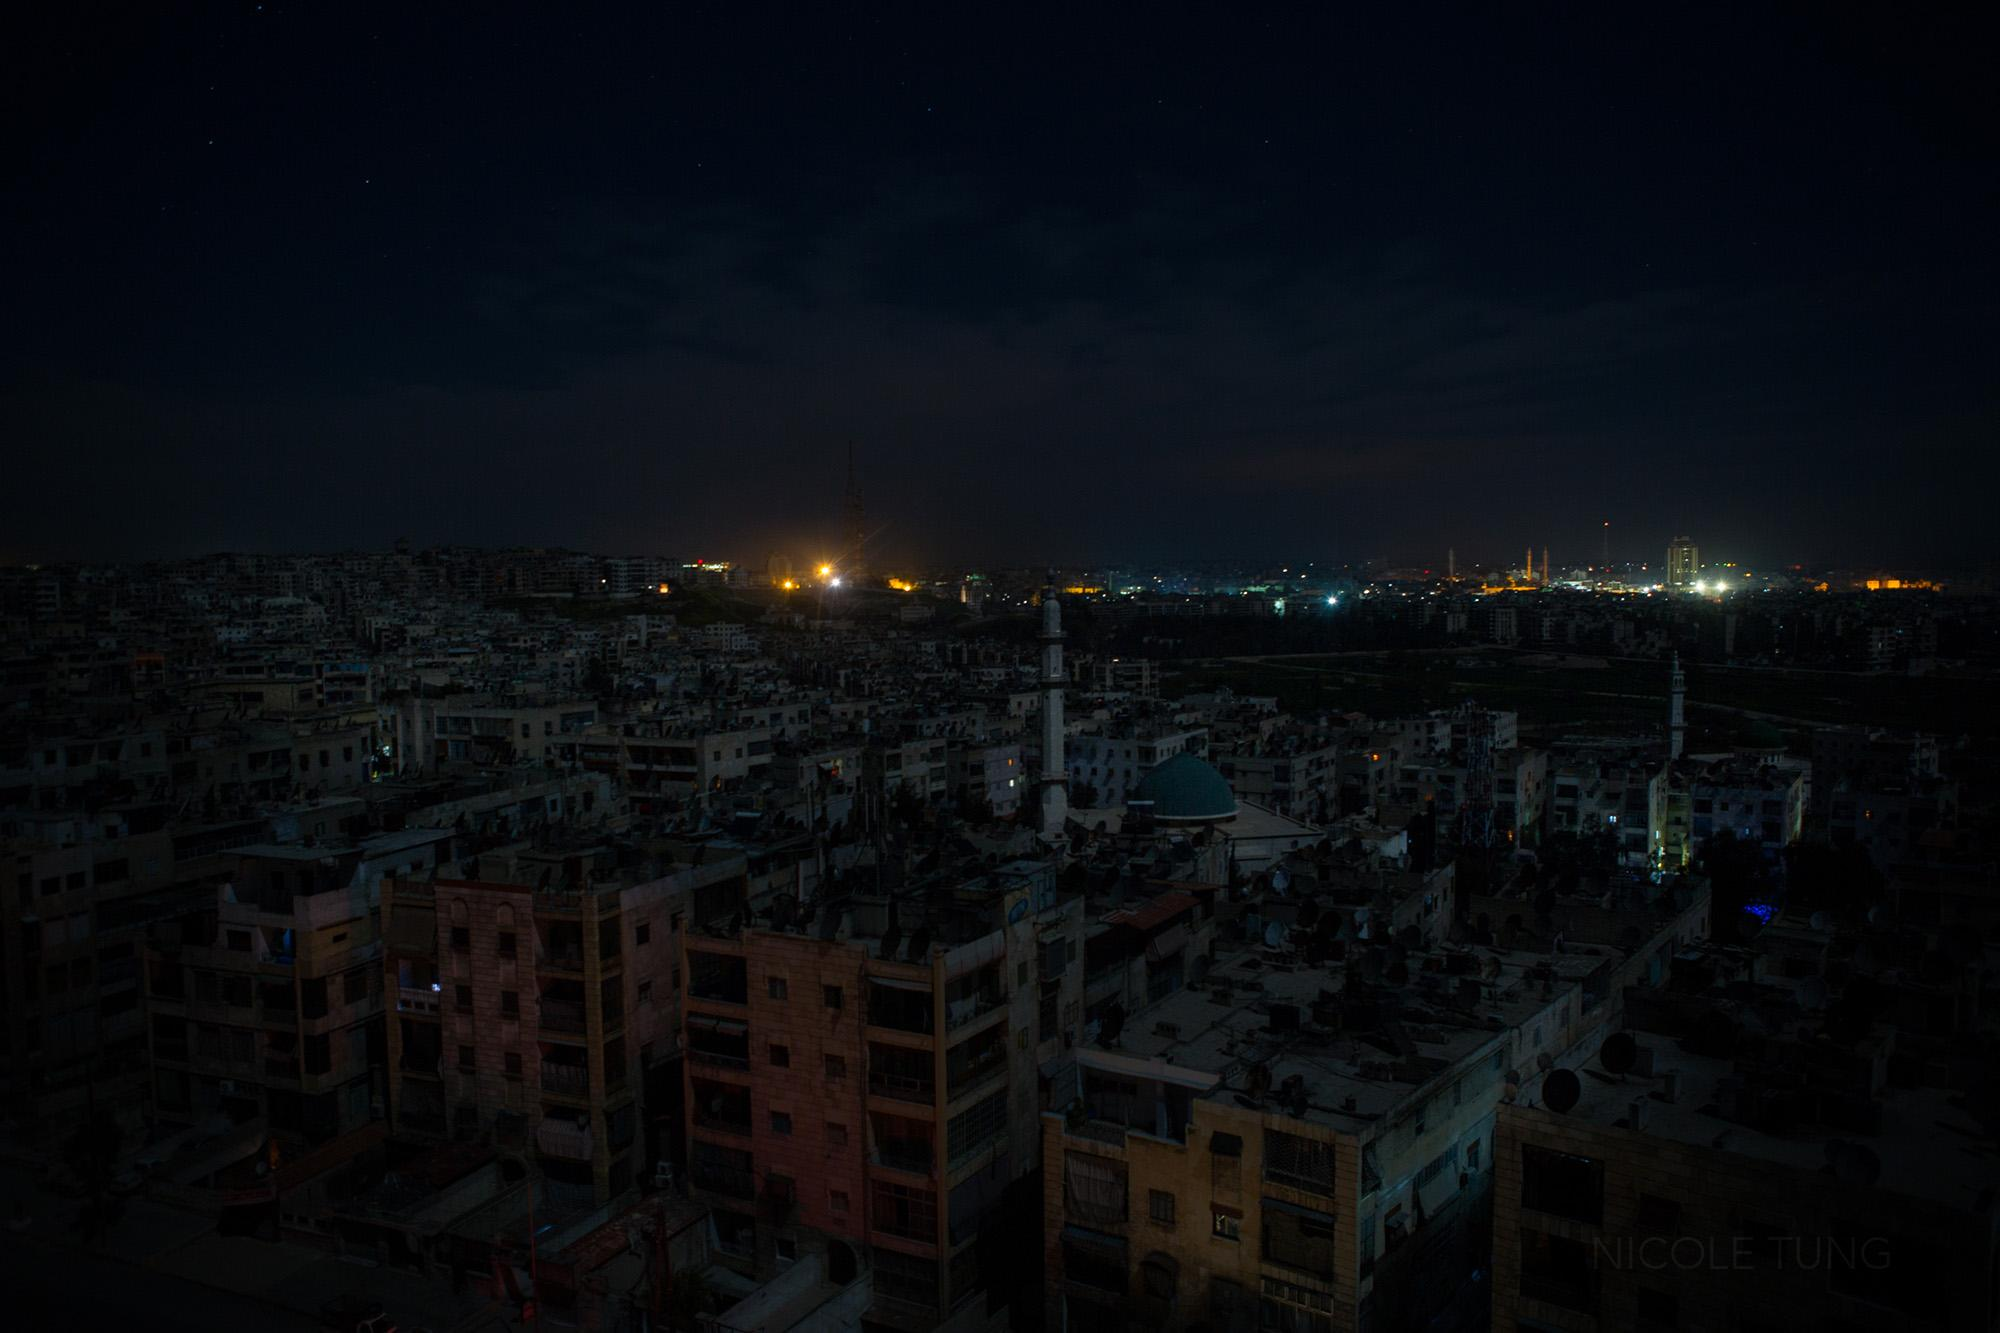 Opposition-held Aleppo, foreground, is seen against a brightly lit government held area in the horizon. Aleppo, Syria. March 2013.